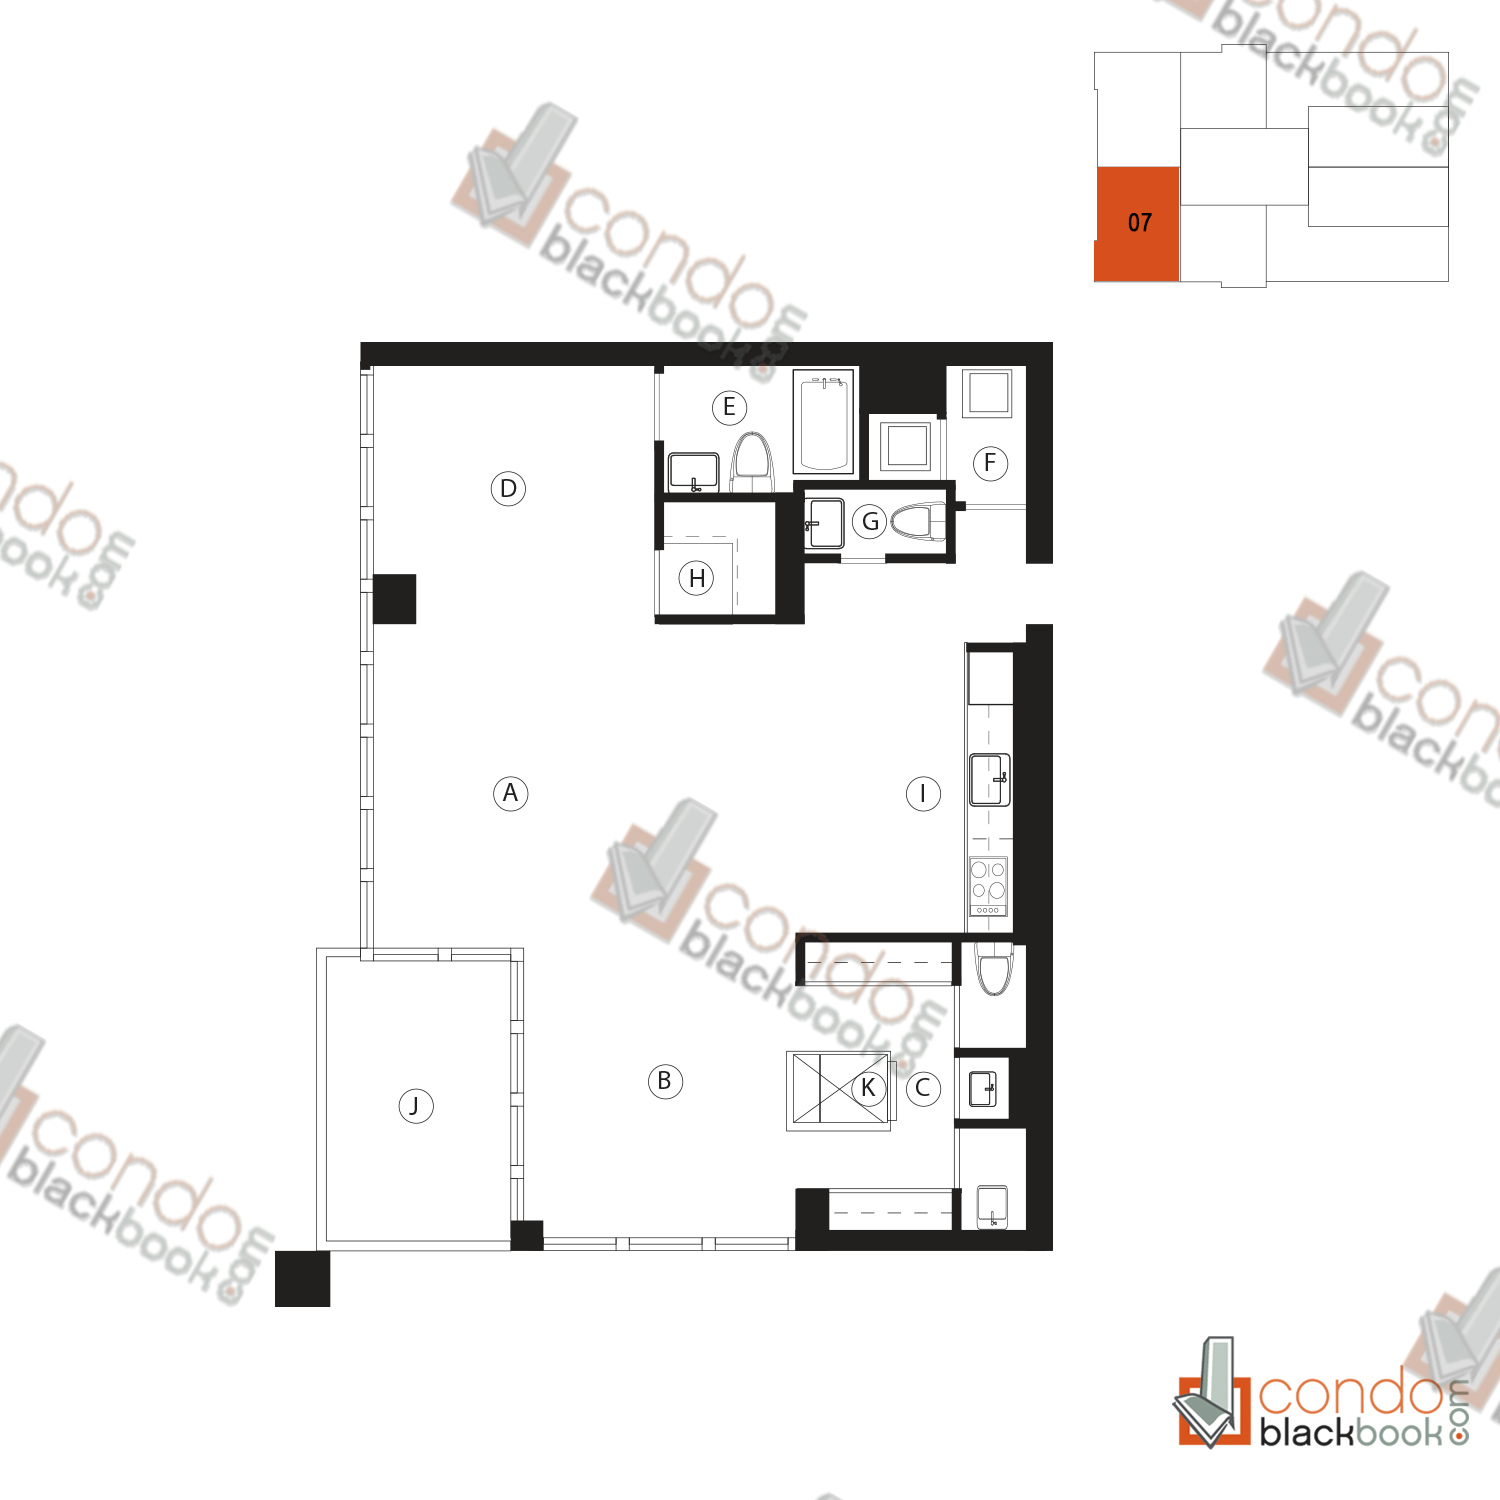 Floor plan for Ten Museum Park Downtown Miami Miami, model 07, line 07, 2/2.5 bedrooms, 1,123 sq ft